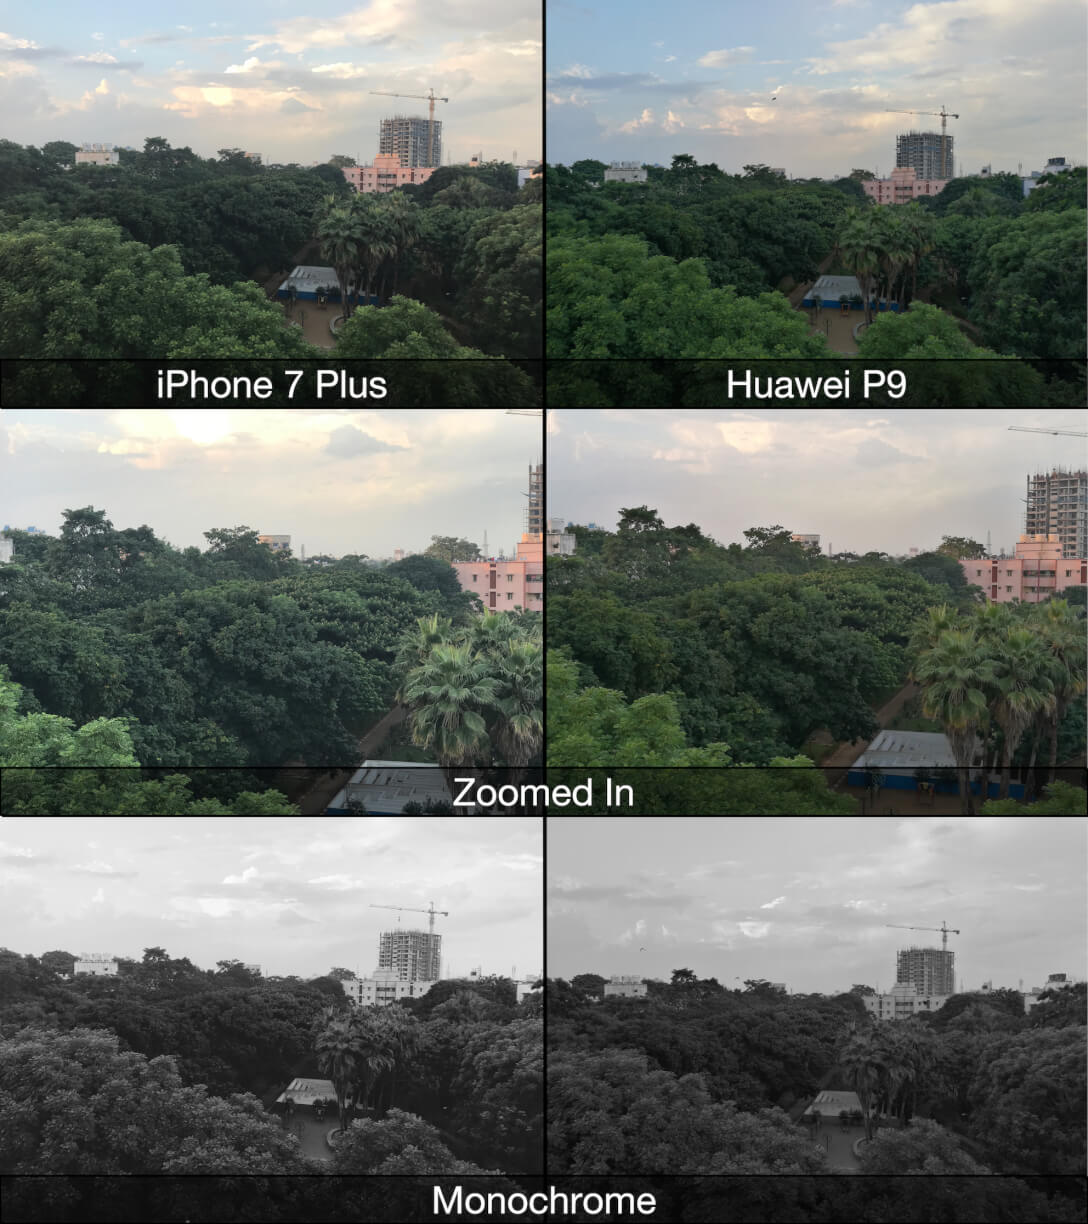 iphone7_vs_huaweip9_camera_techzei_second_camera